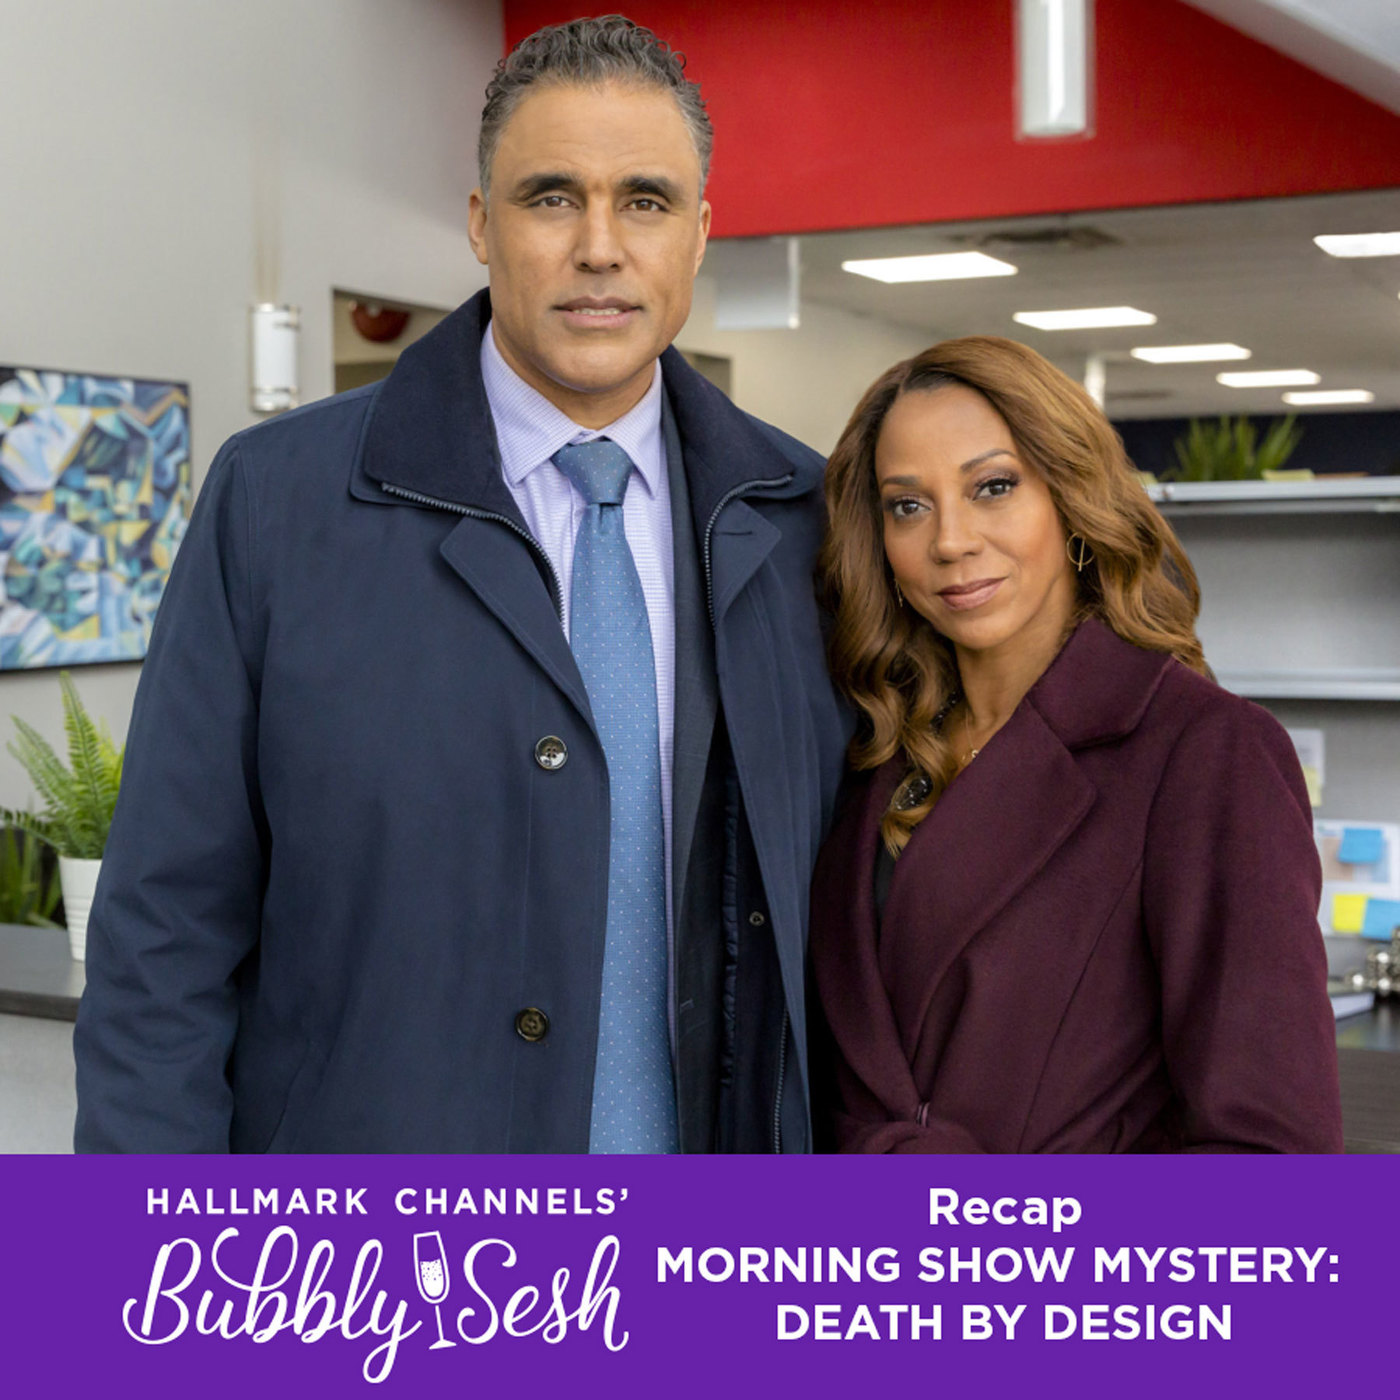 Morning Show Mystery: Death By Design Recap